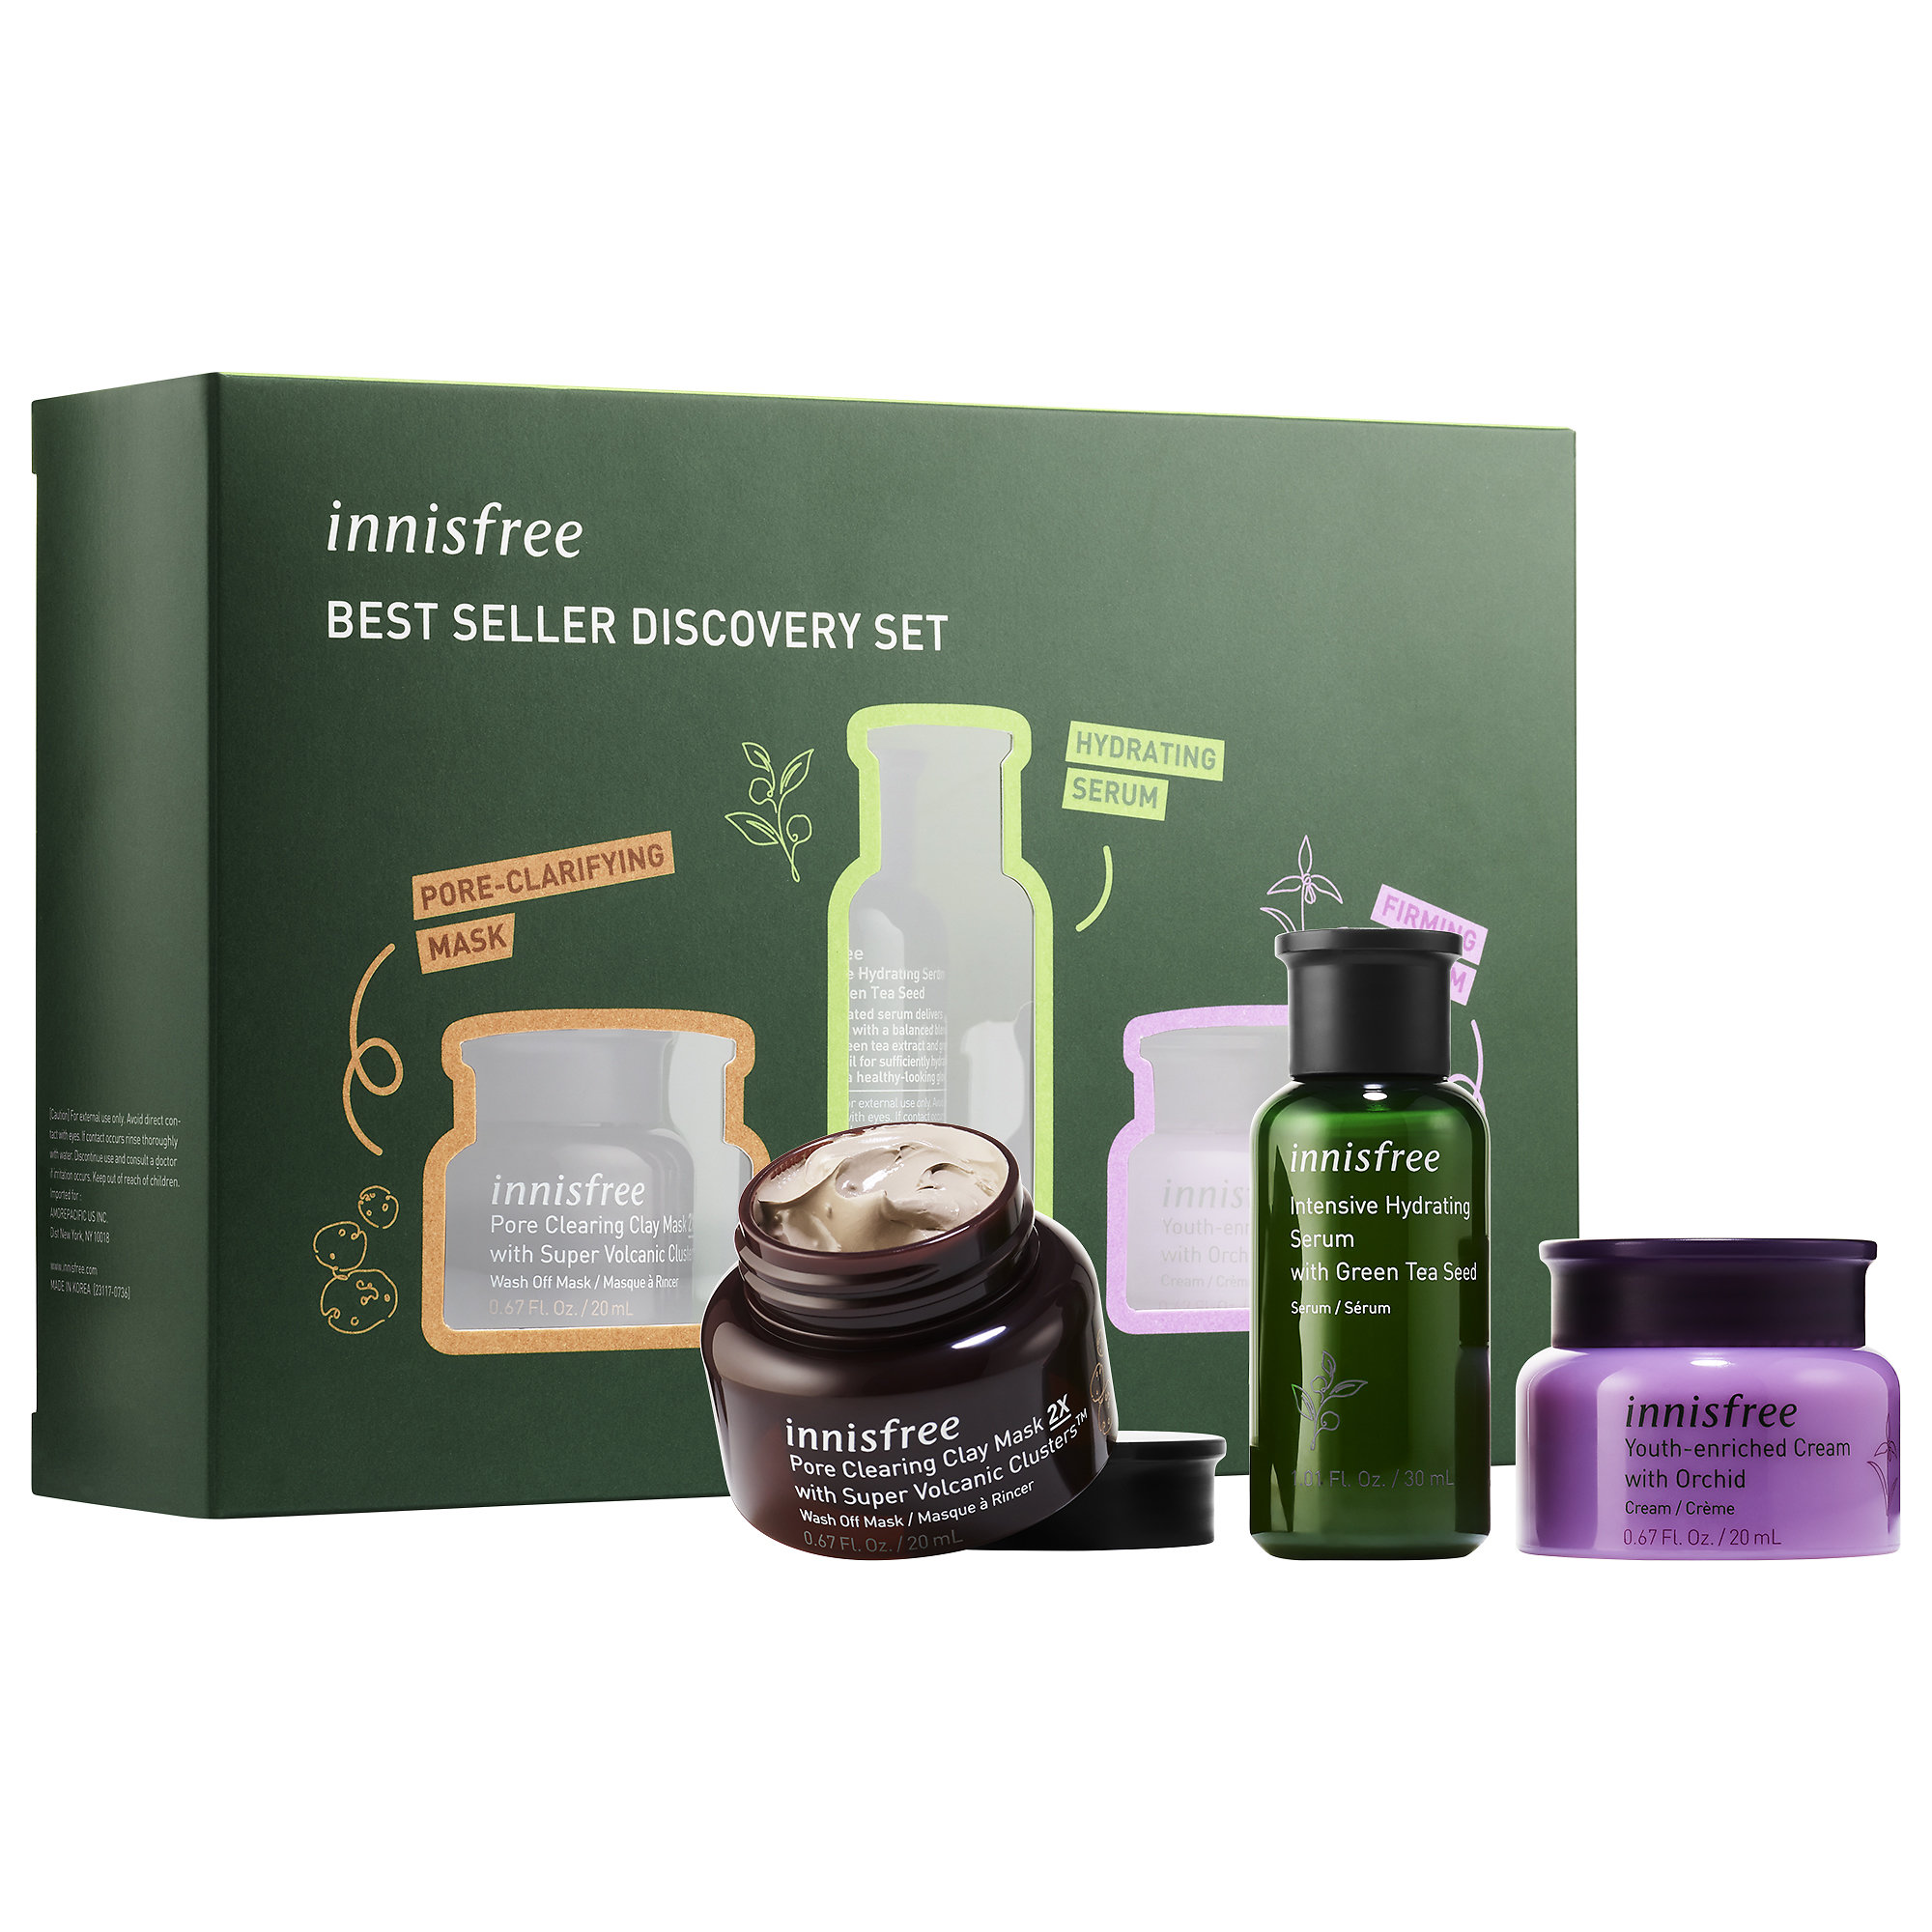 Innisfree - Best Seller Discovery Set